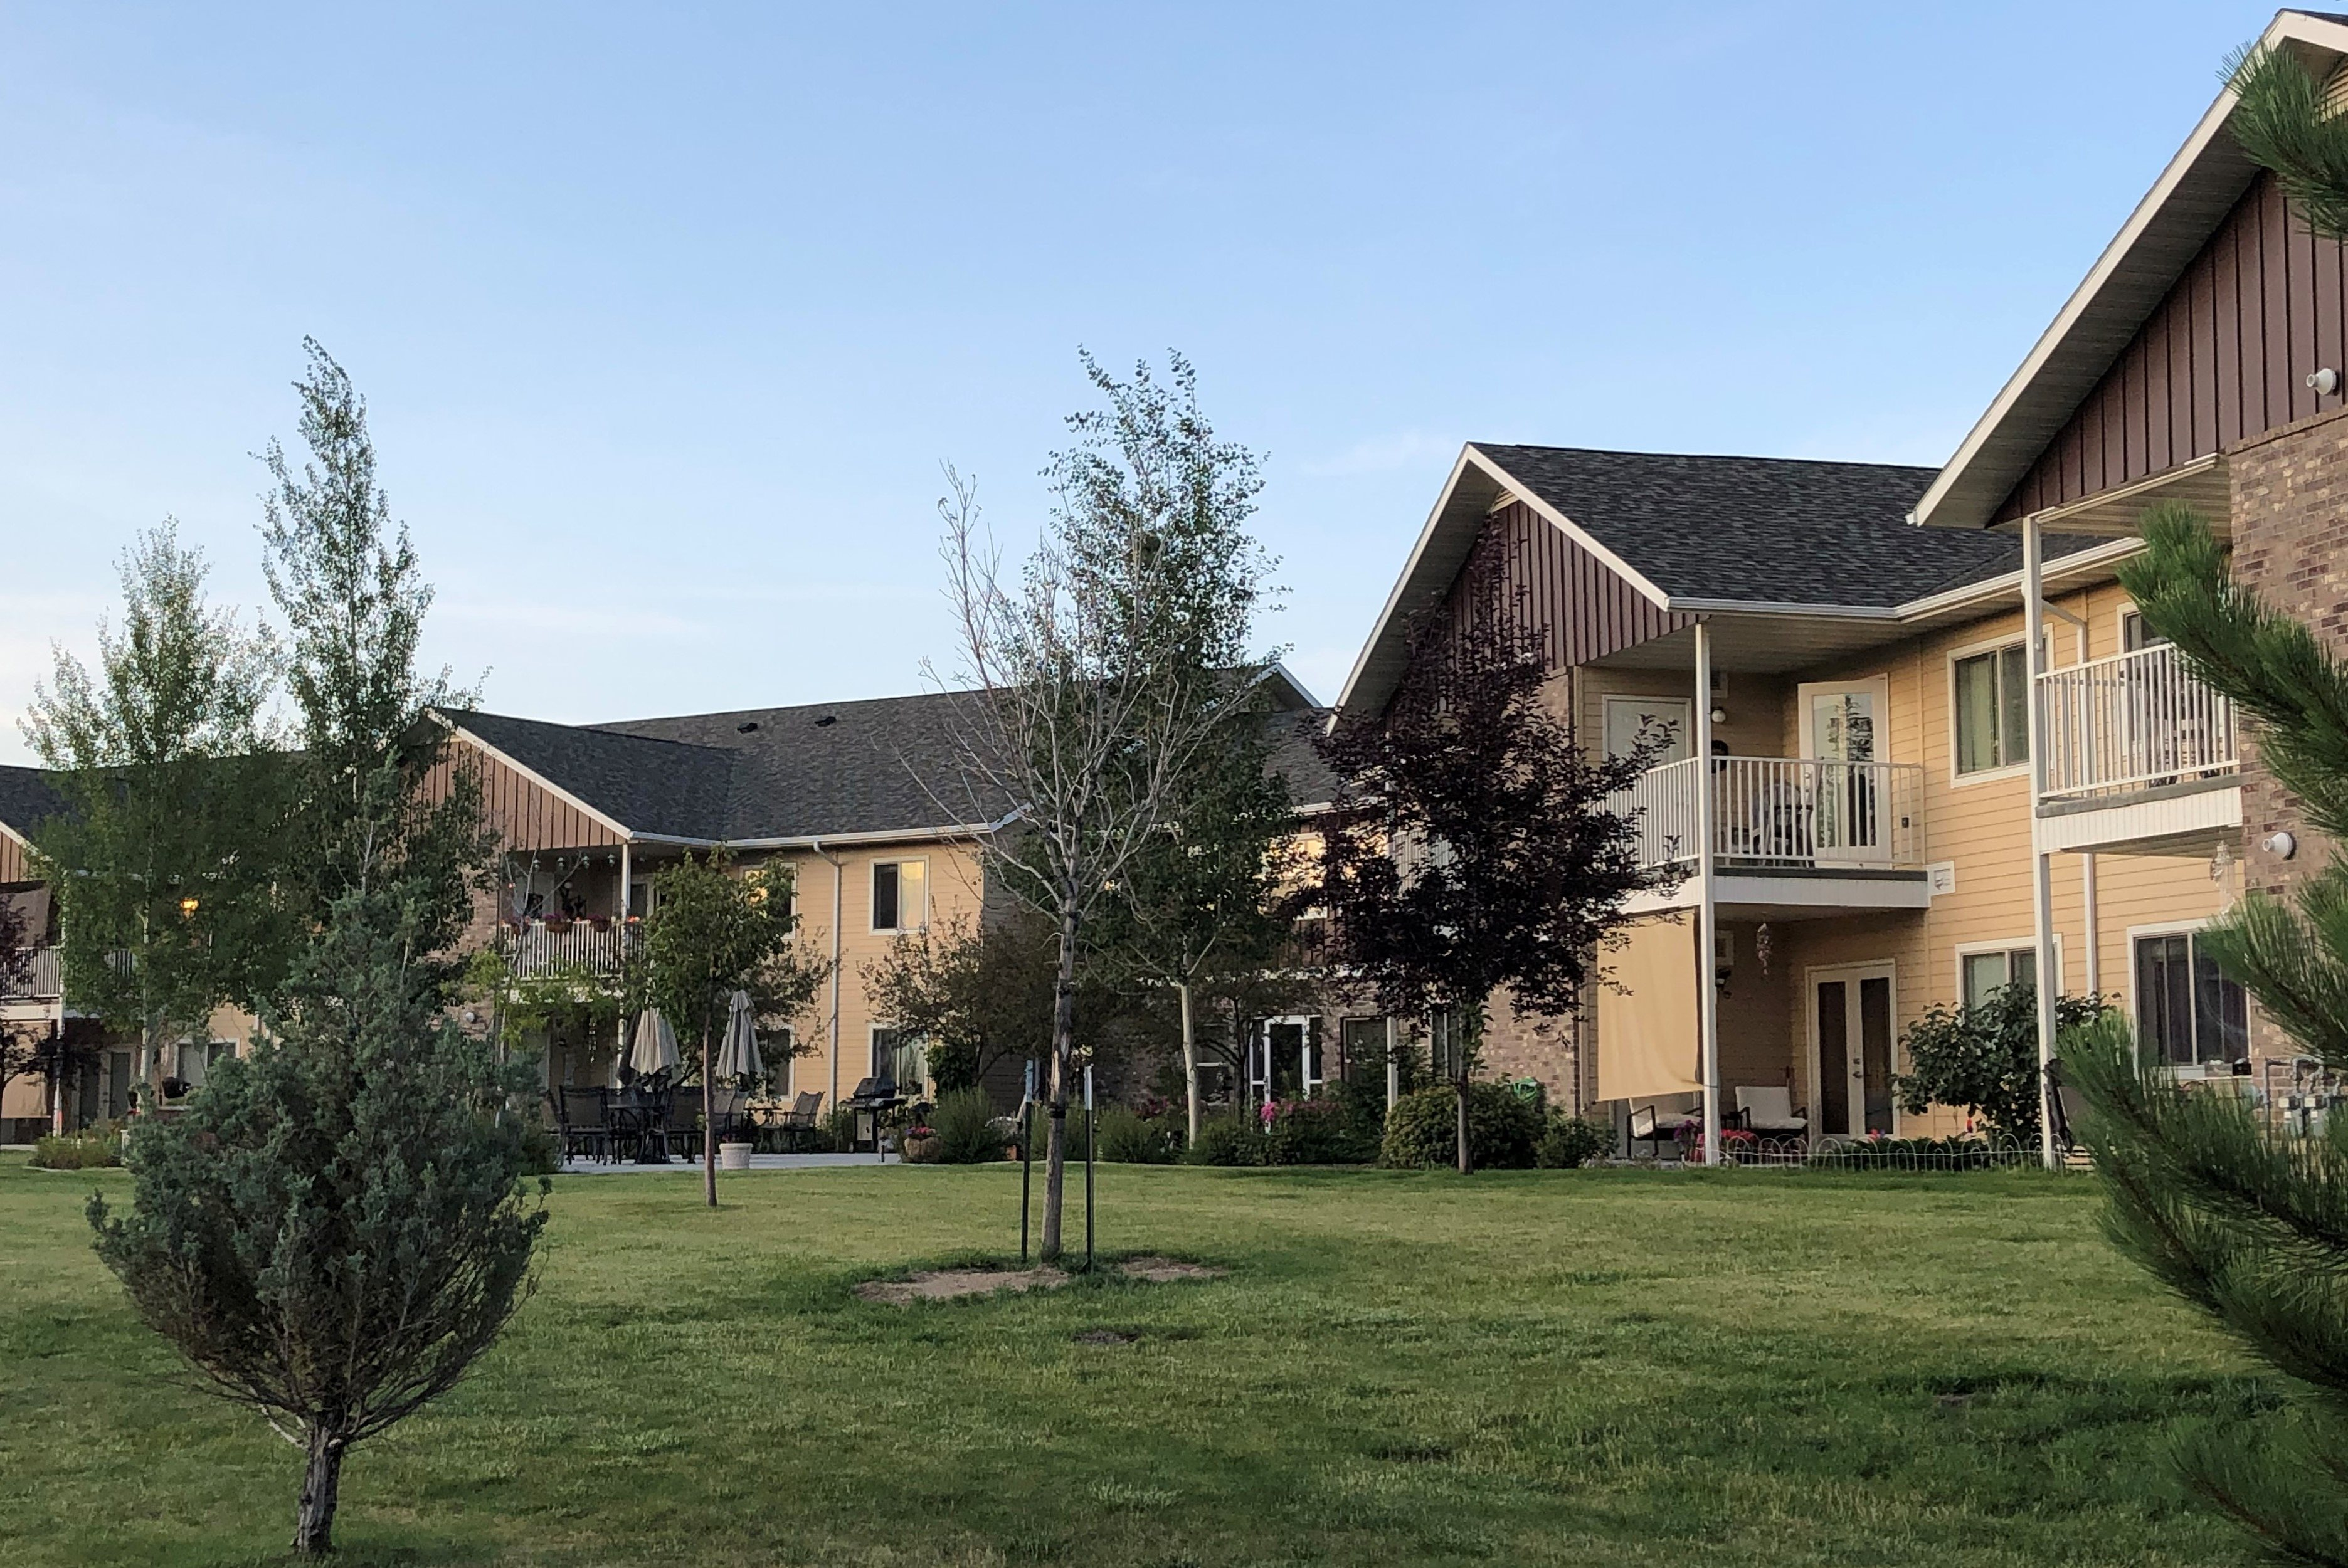 Image of Meadowlands Apartments in Butte, Montana